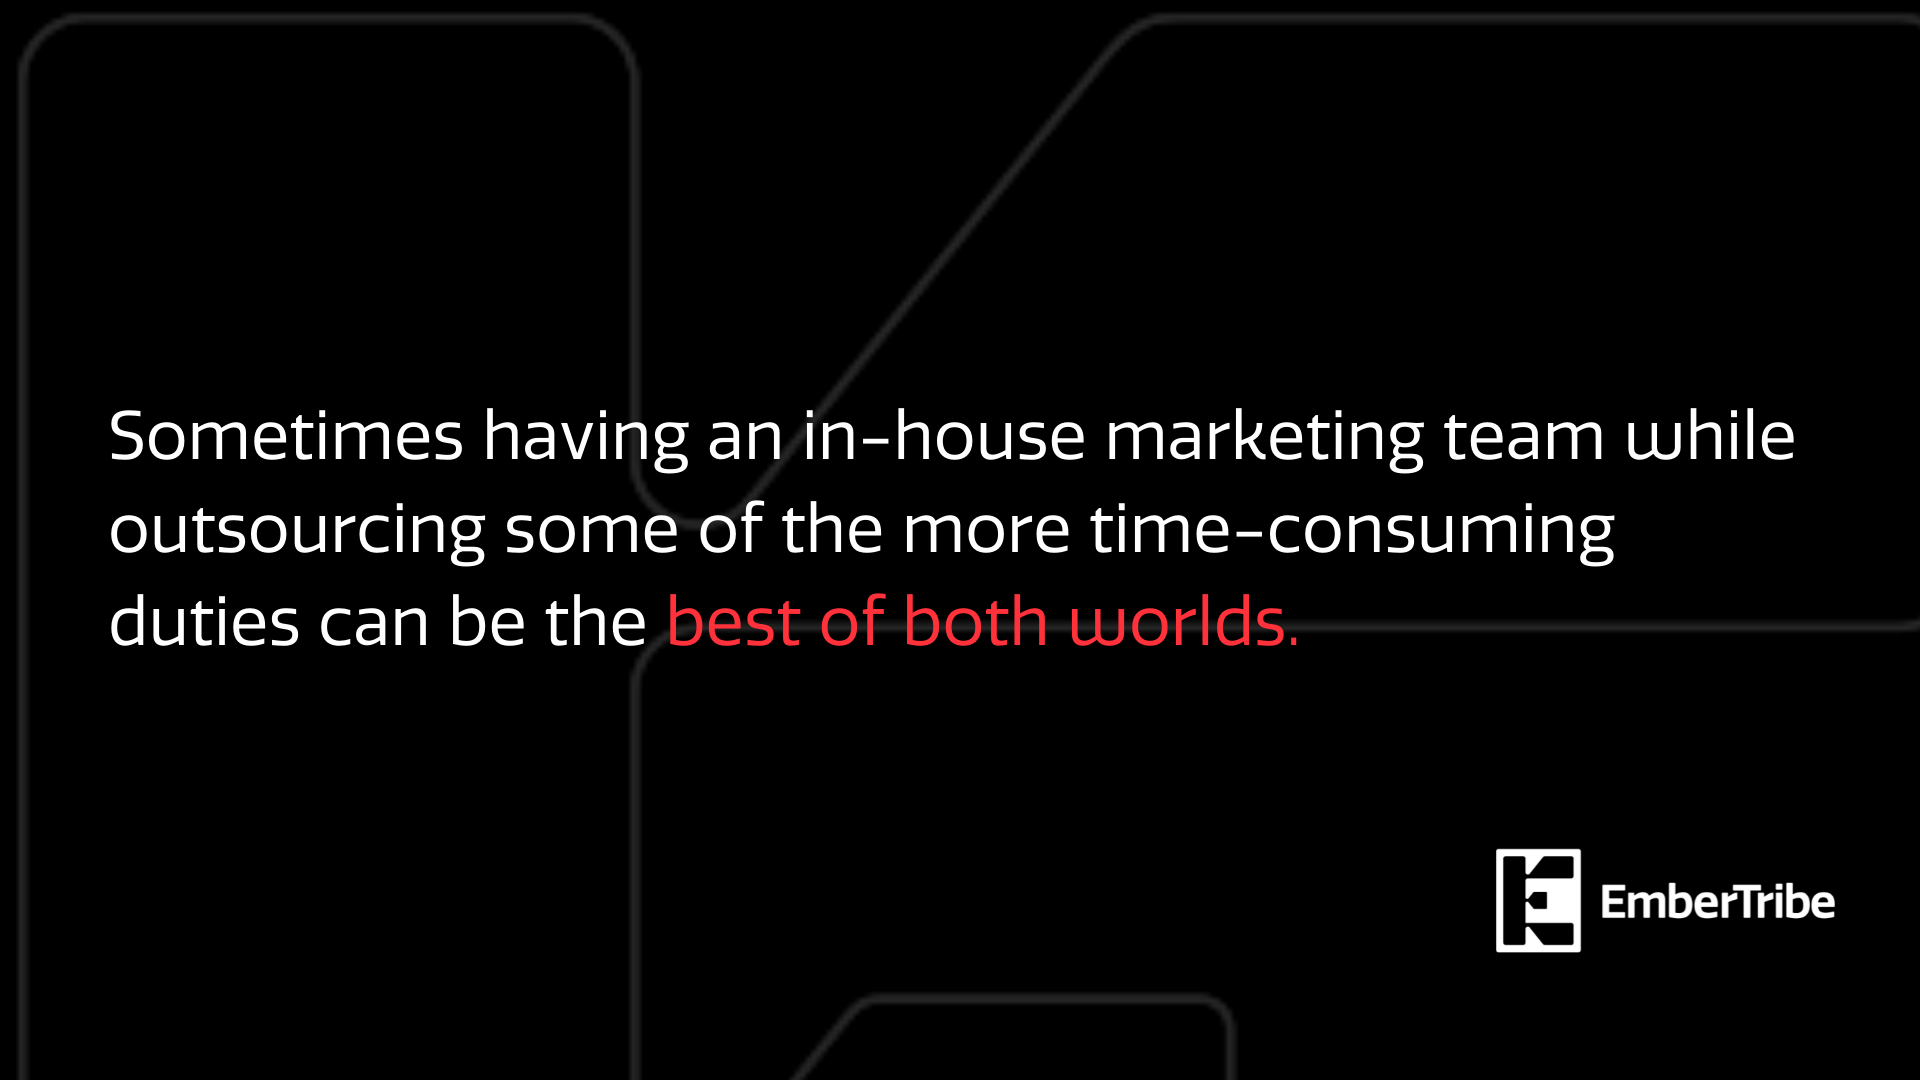 Best of both worlds for marketing